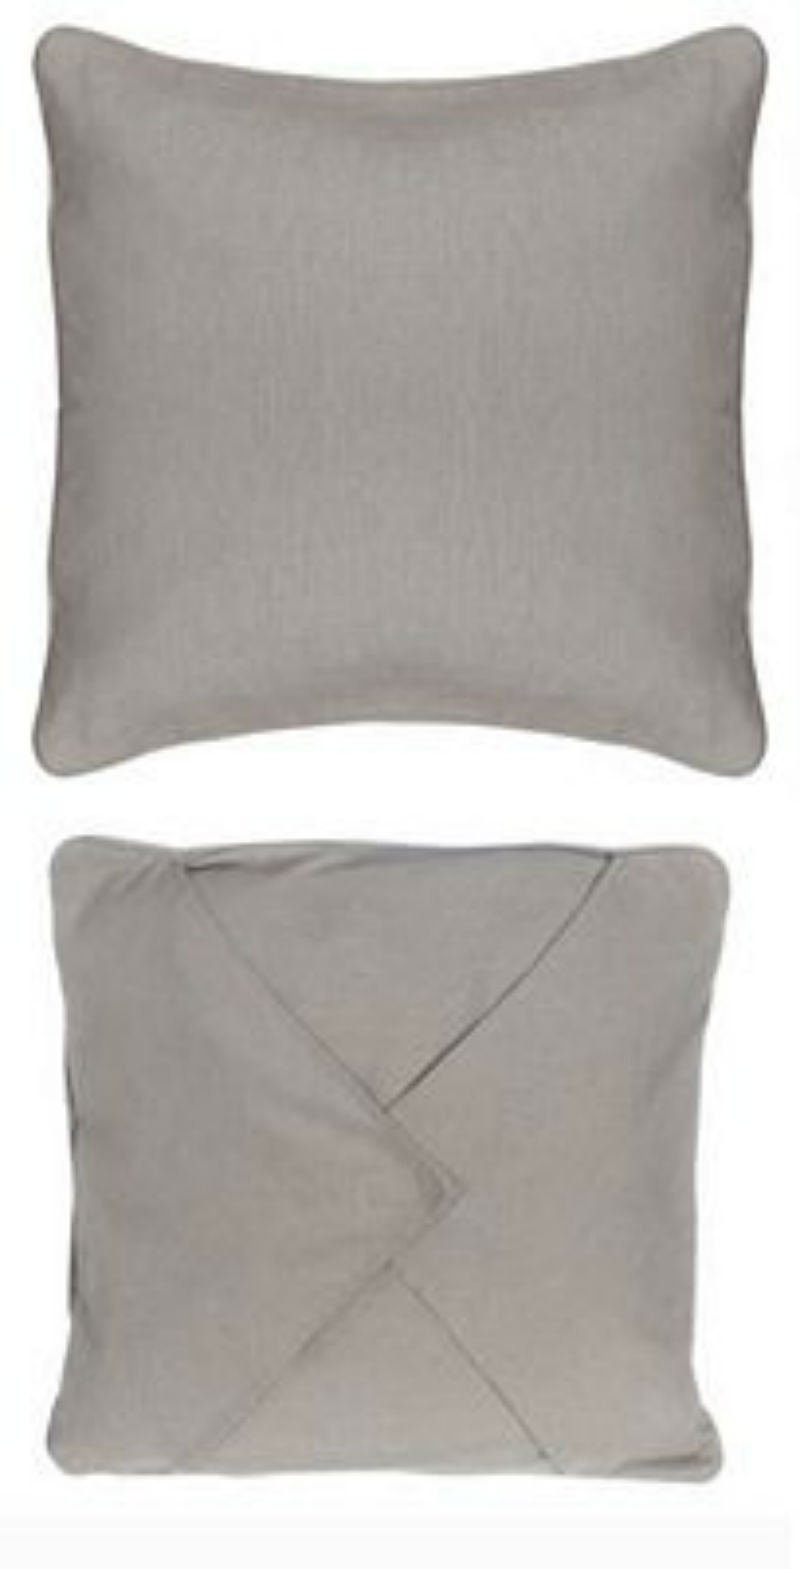 Easy as 1-2-3 Embroidery Pillow - 14 Grey